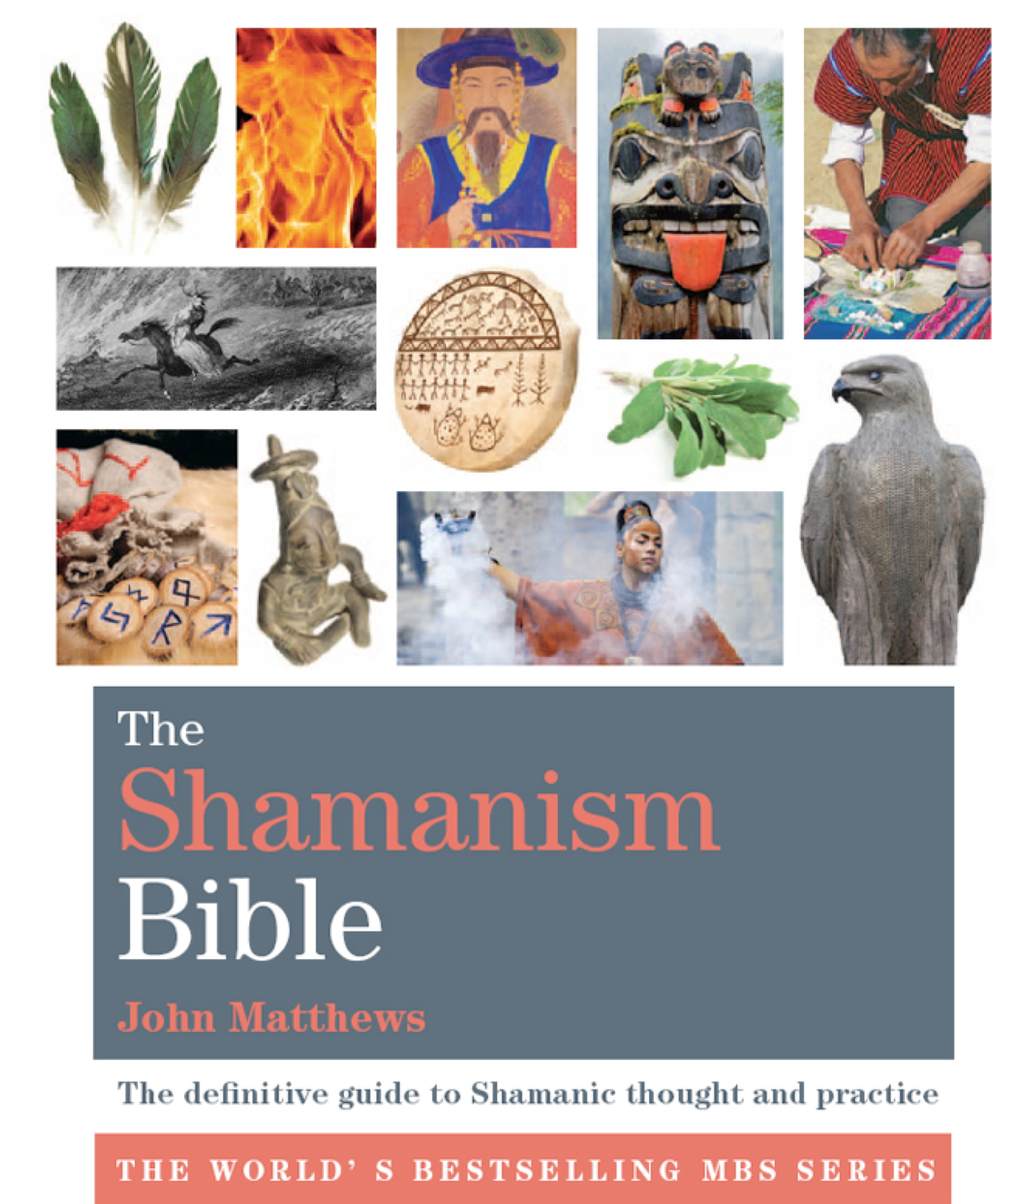 The Shamanism Bible The definitive guide to Shamanic thought and practice